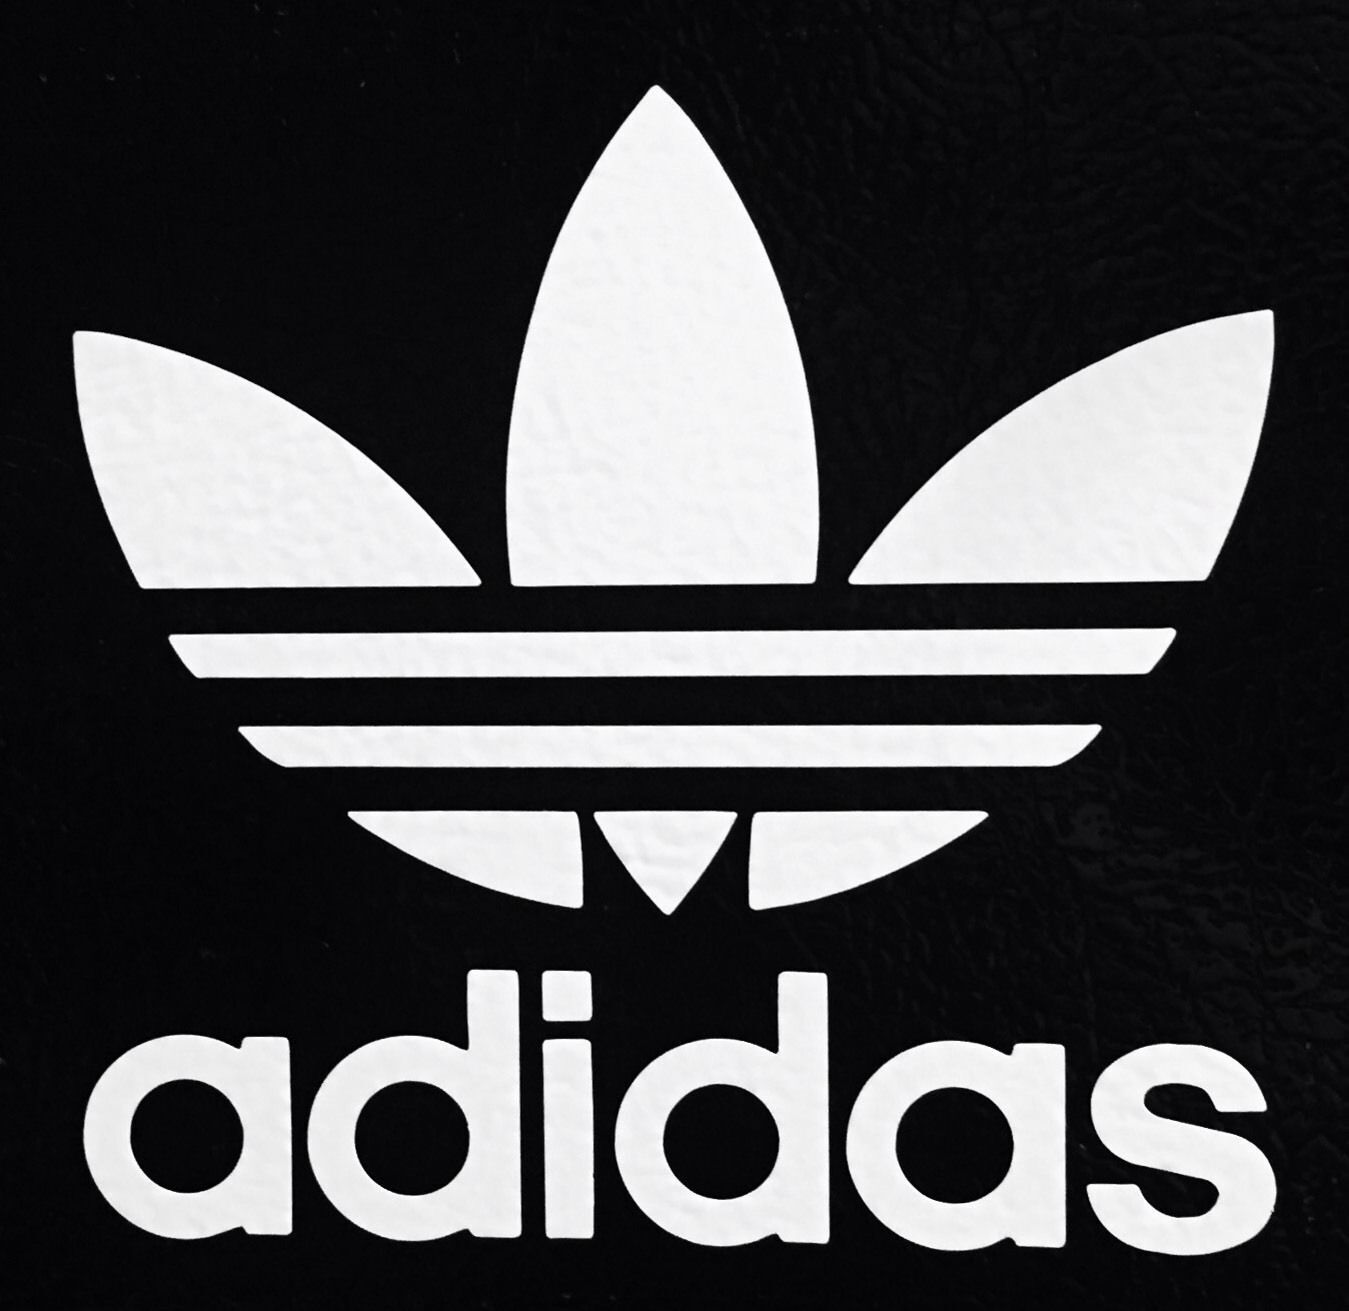 Home Decoration - Adidas Logo Vinyl Decal Die Cut Surfboard Snowboard Skate Car Window sticker jdm